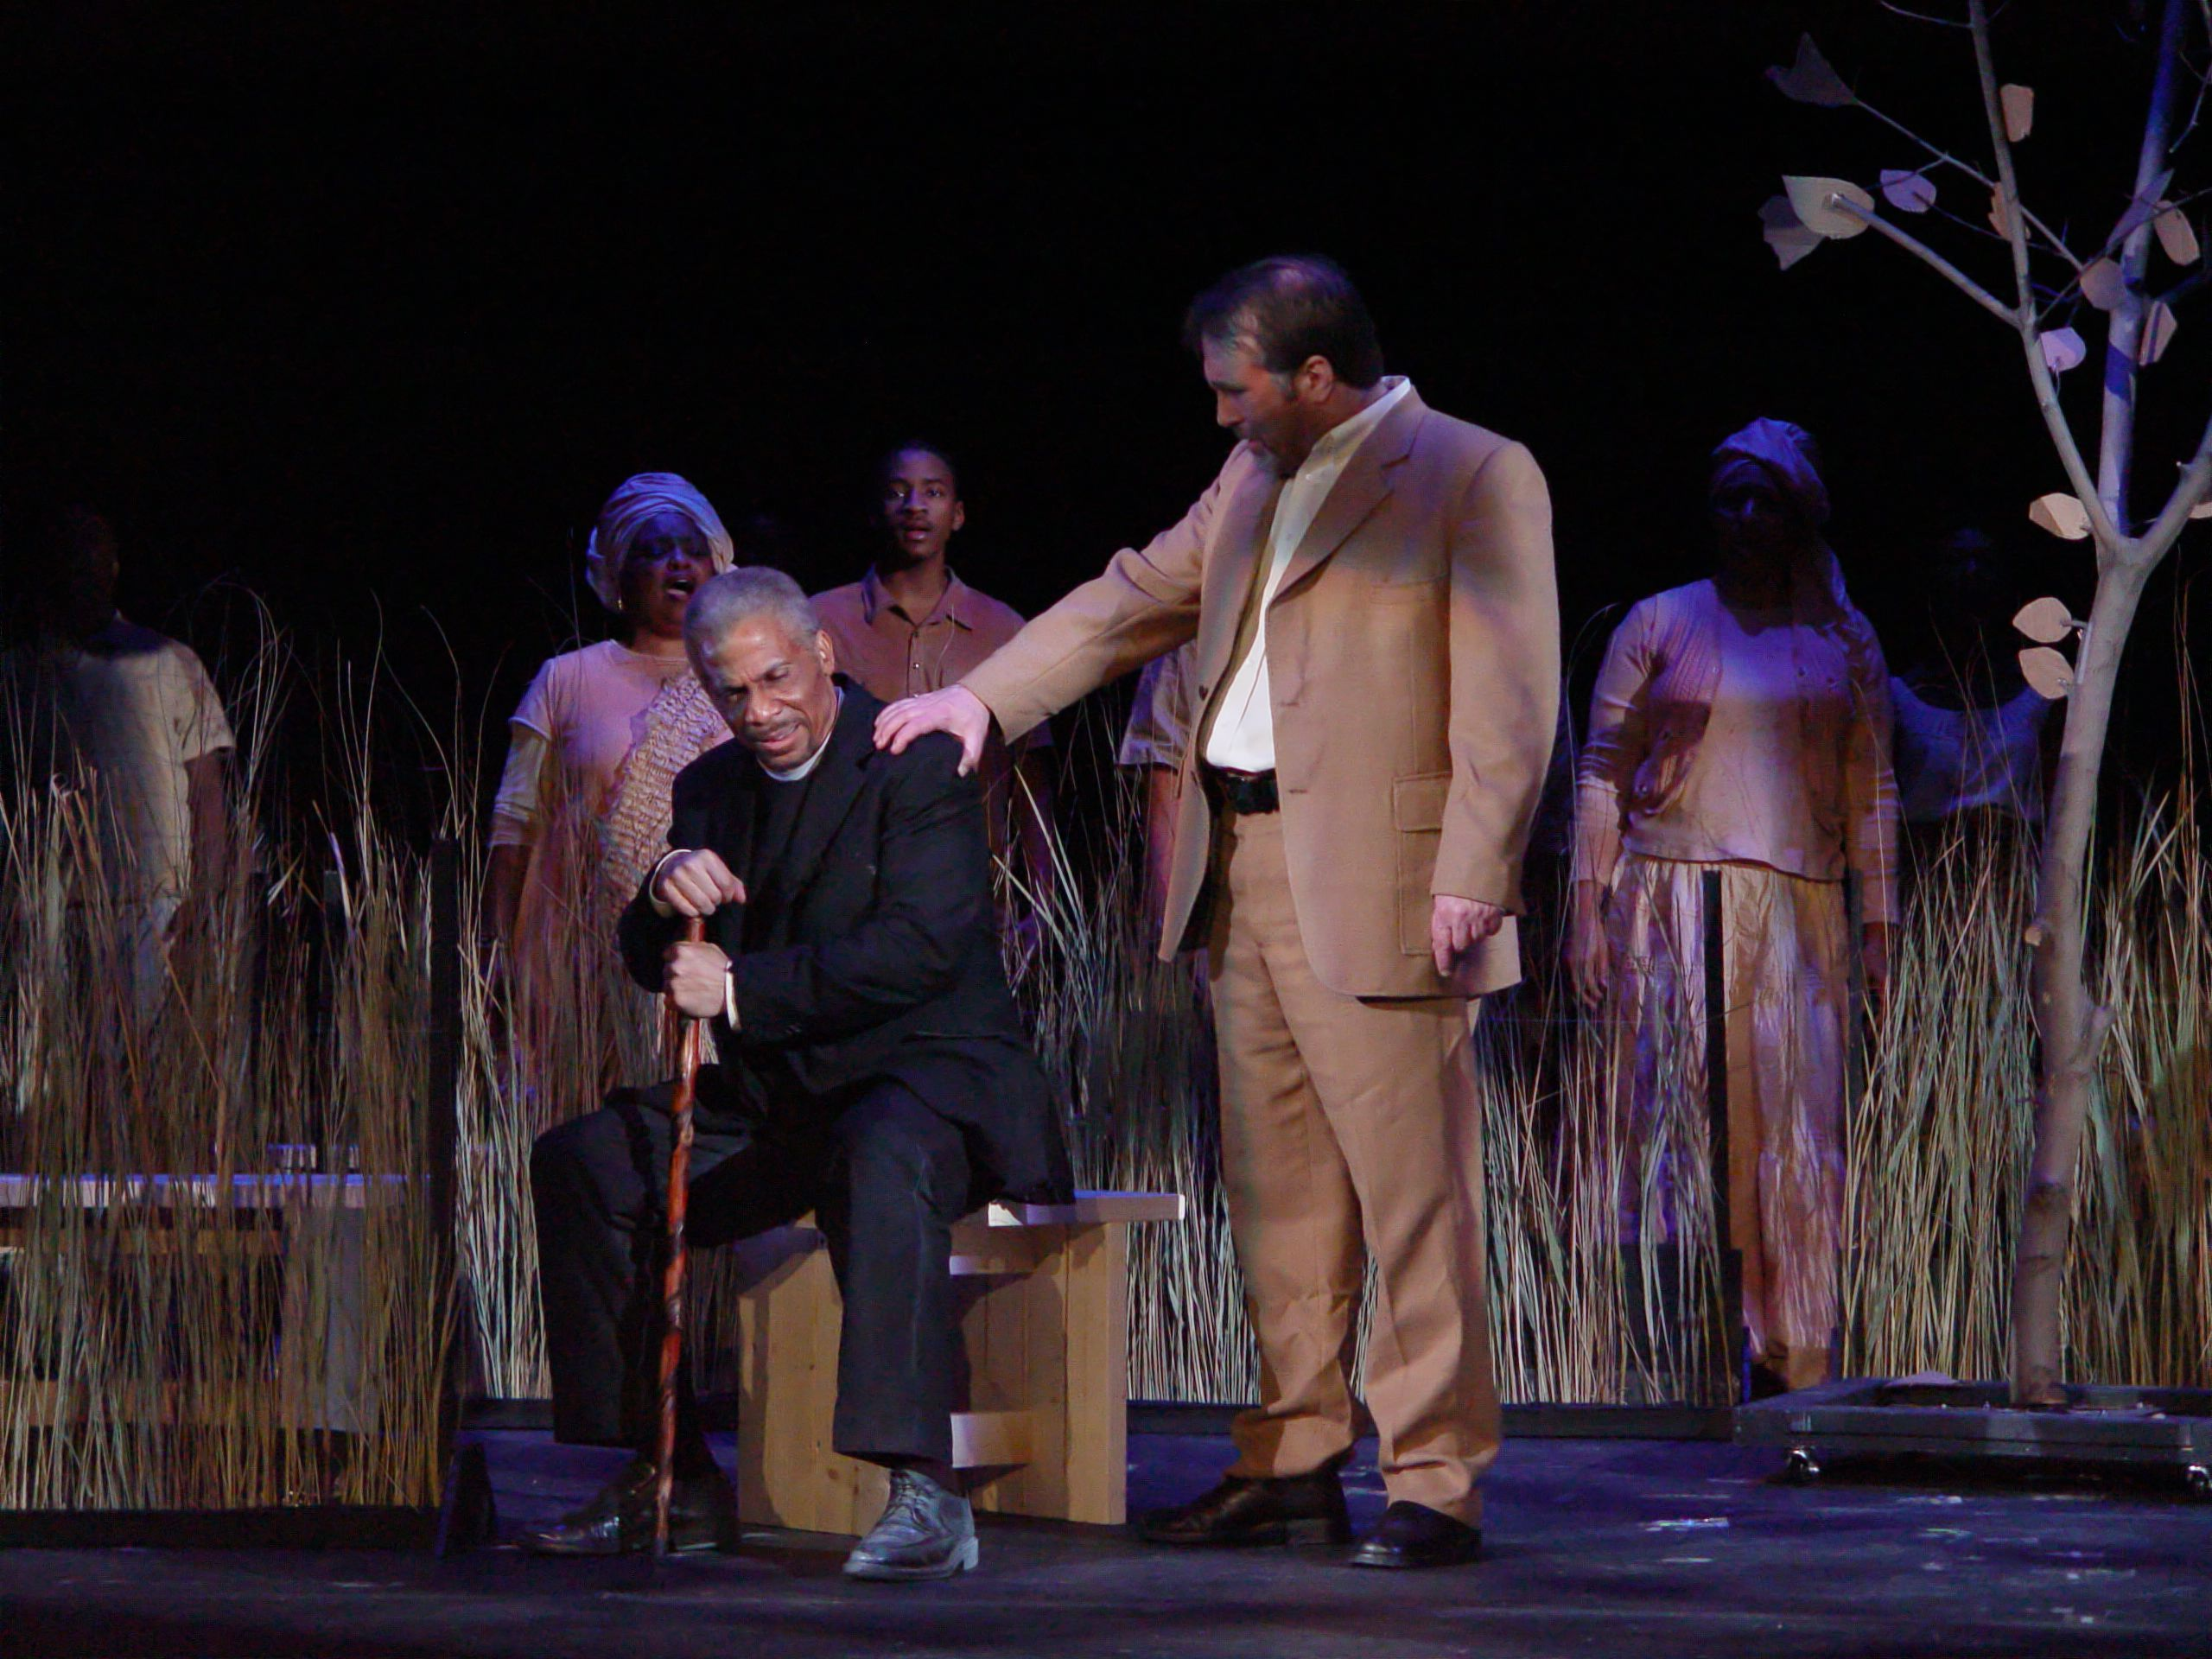 Reconciliation: LOST IN THE STARS at Pittsburgh Opera/Virginia Arts Festival, 2008.